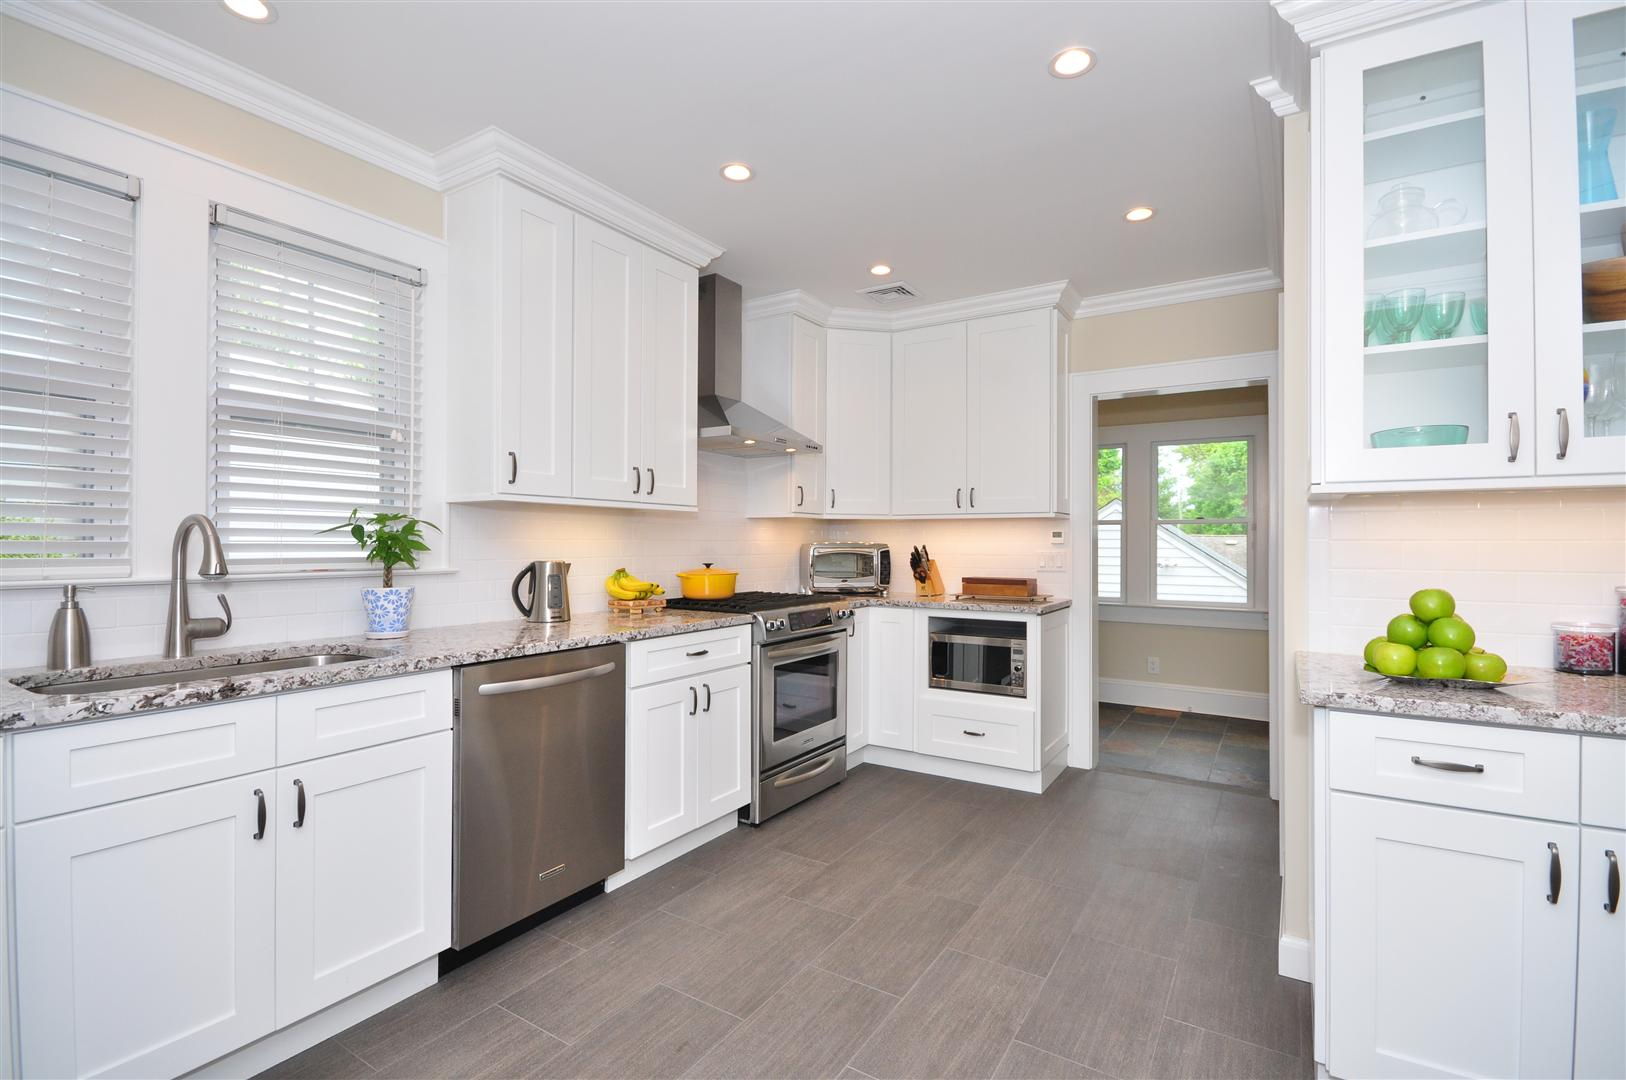 Complete Spacious Kitchens with White Cabinets and Grey Marble Countertop under White Painted Wall